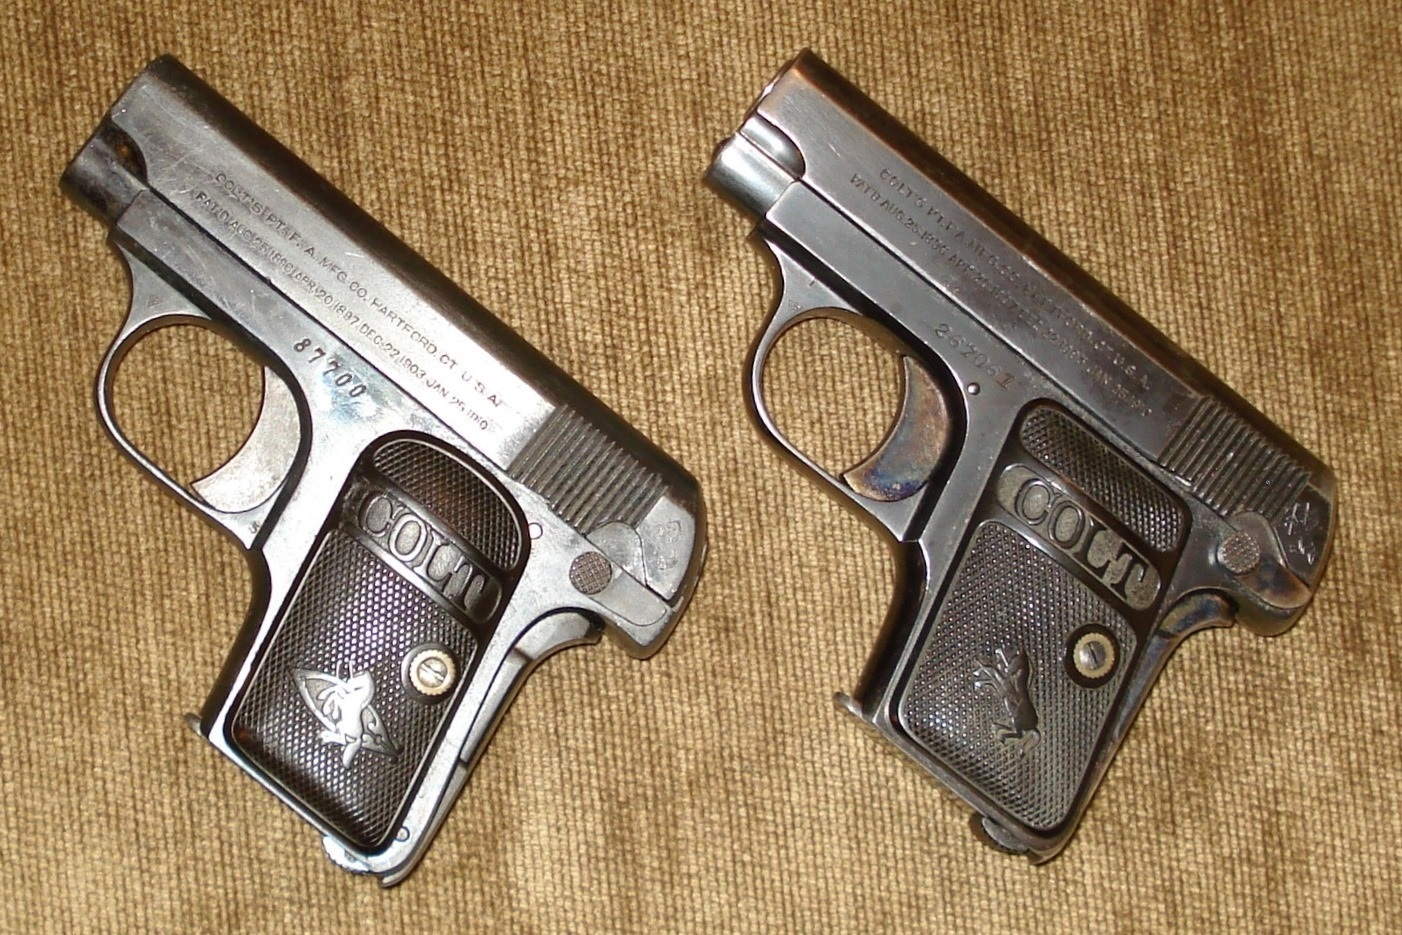 Colt Model 1908 Vest Pocket - Wikipedia